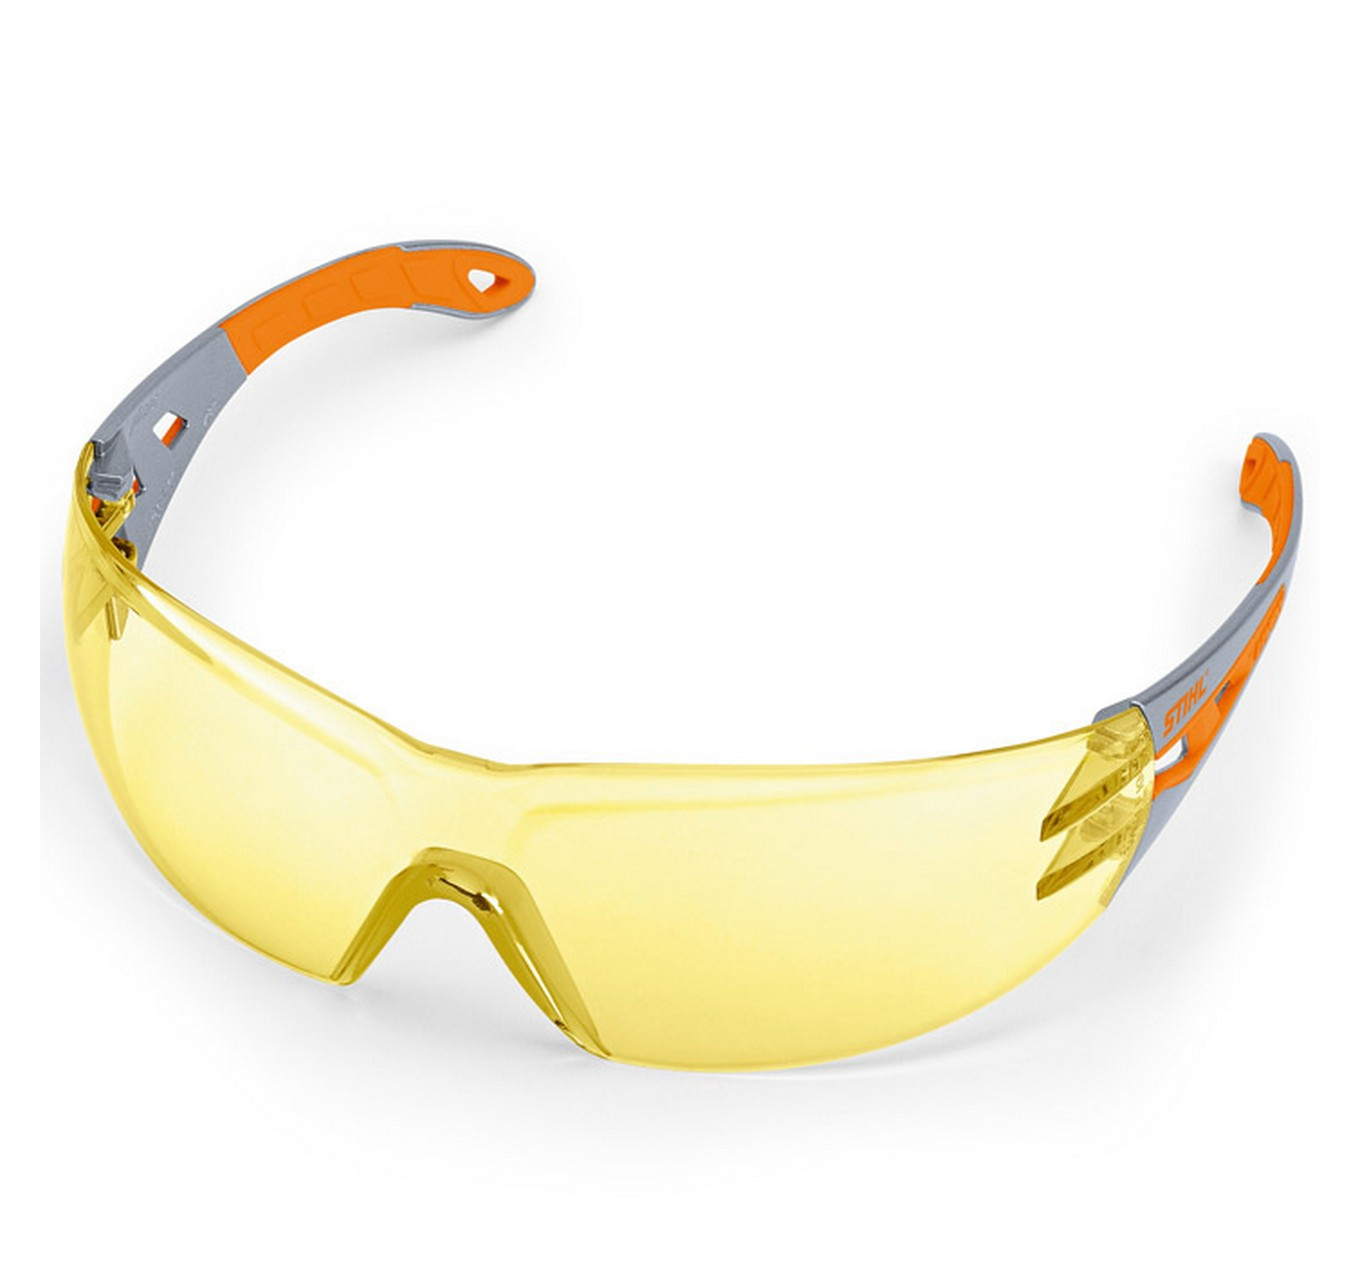 Light+ Safety Glasses - Yellow